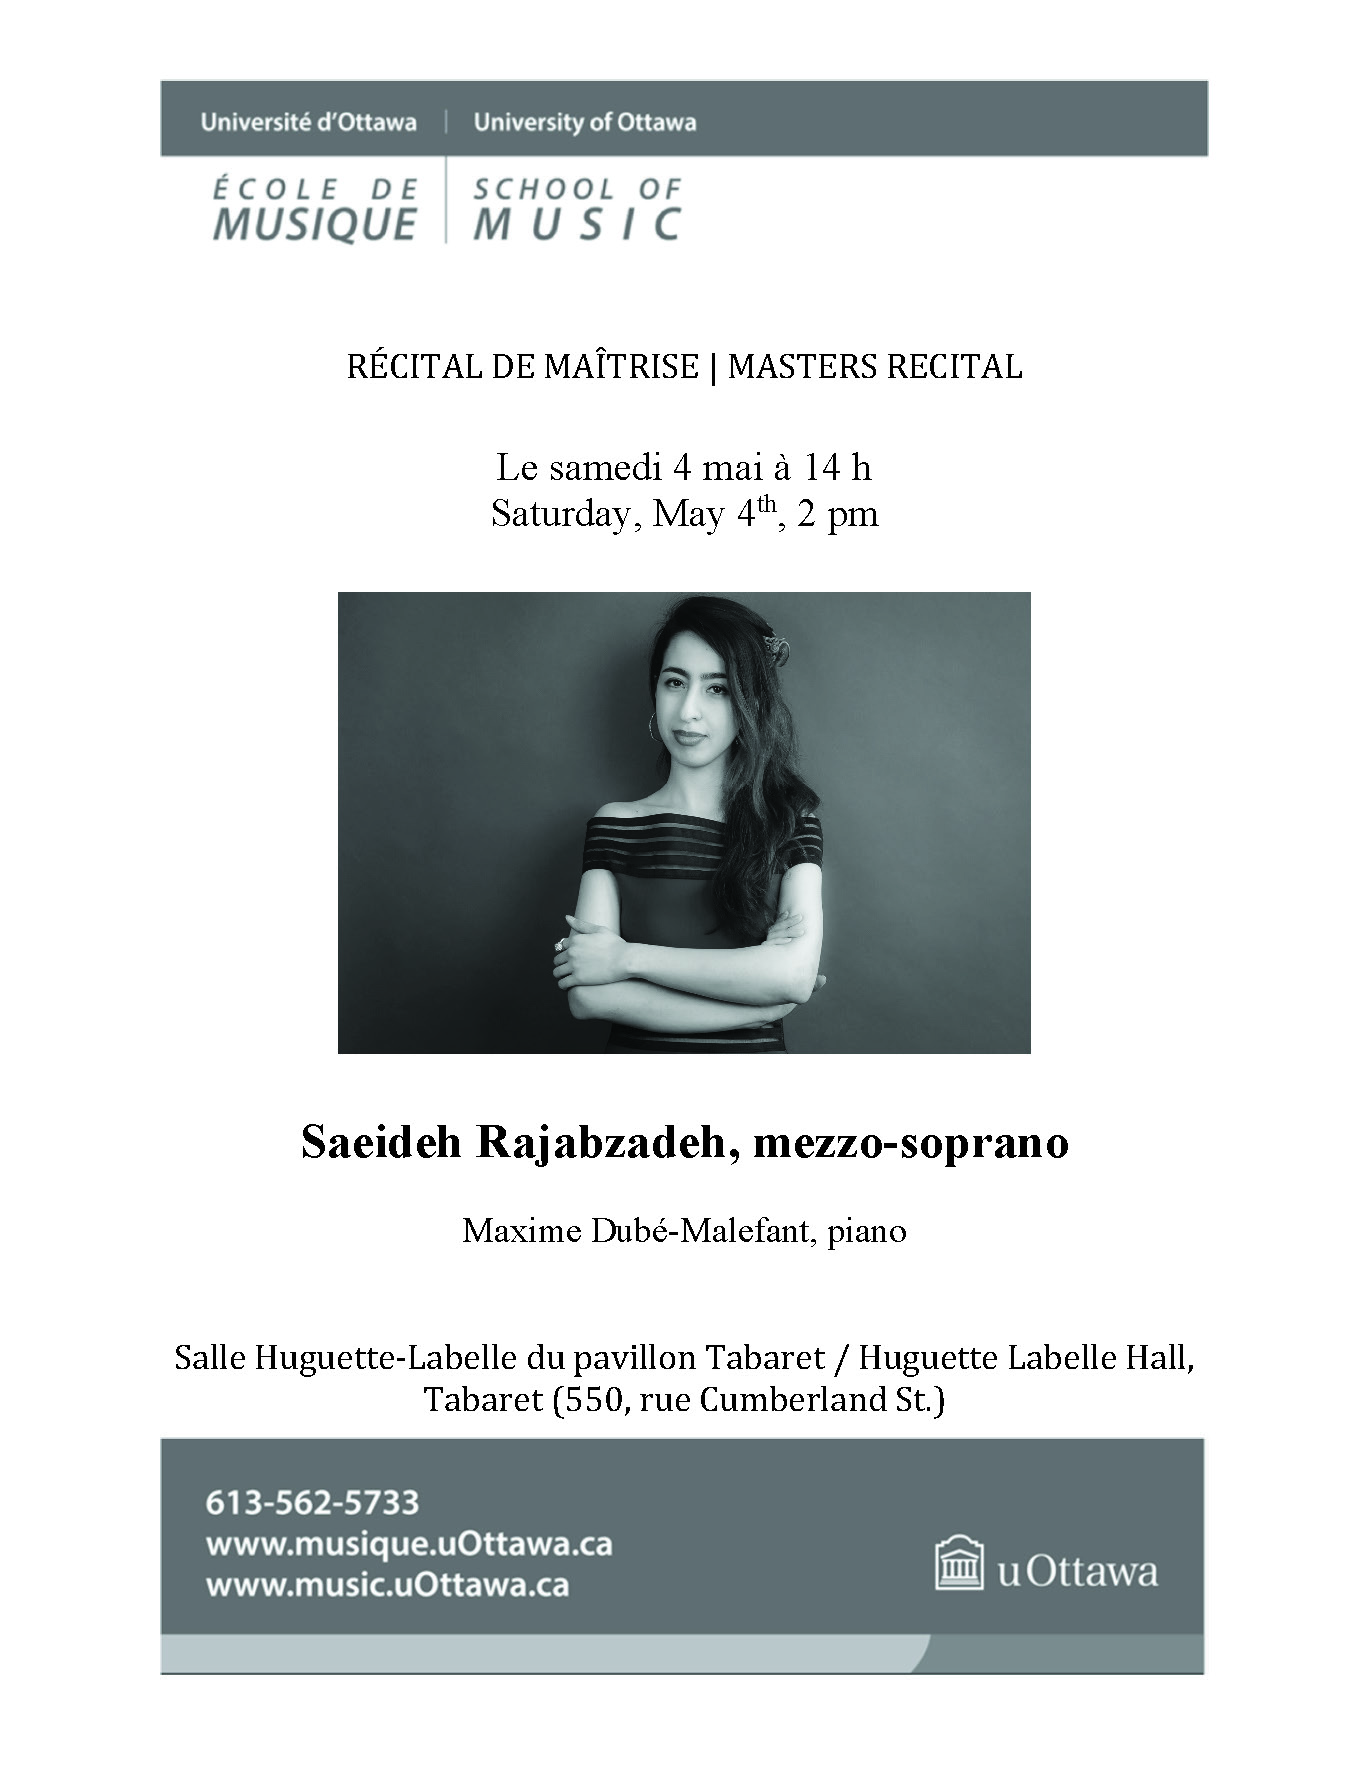 Recital program for Saeideh Rajabzadeh, p. 1